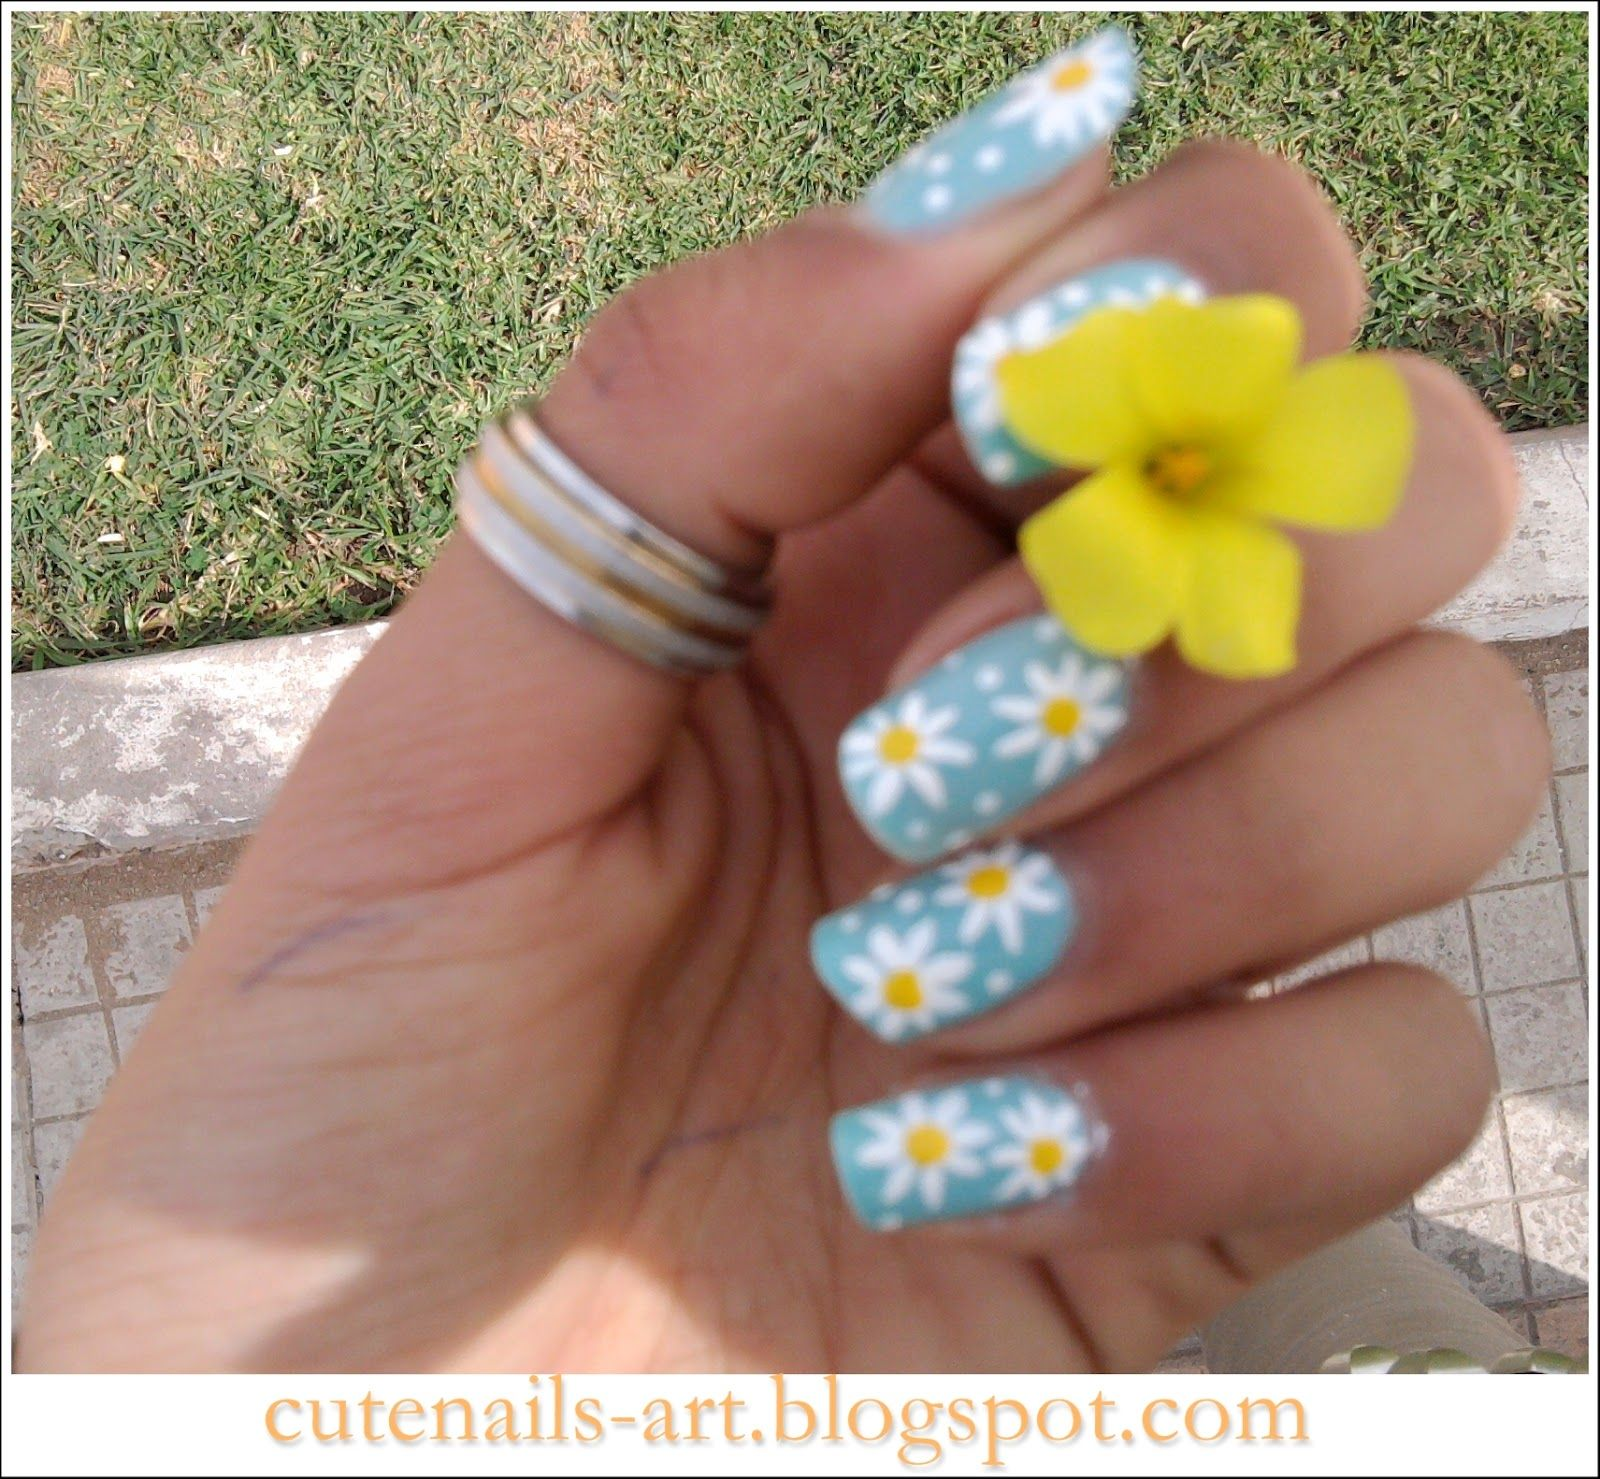 maroc-cutenails-art: spring nails art : Daisy flowers | colors for ...